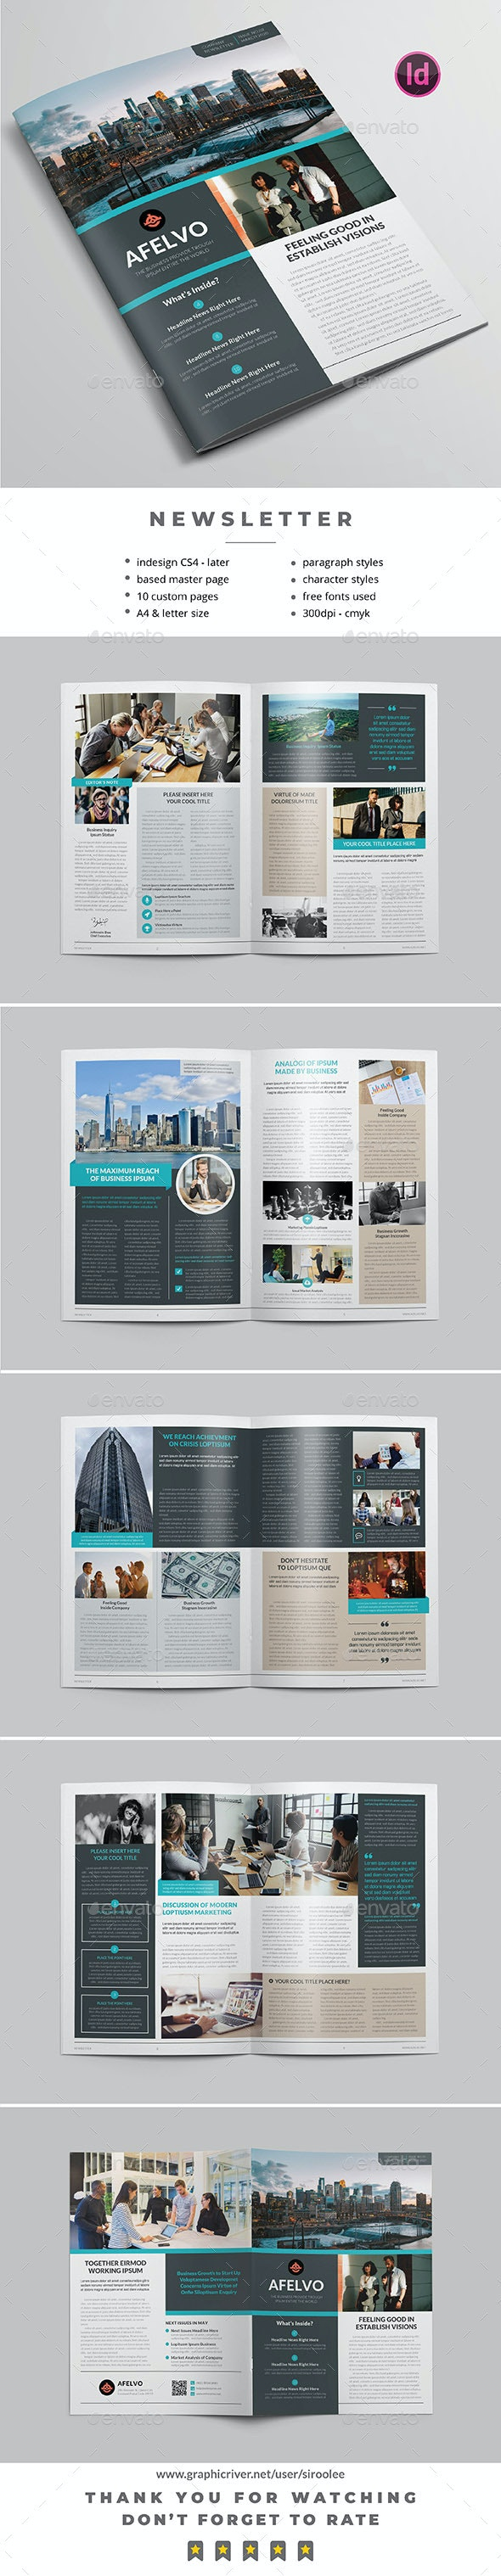 Multipurpose Newsletter v.12 - Newsletters Print Templates